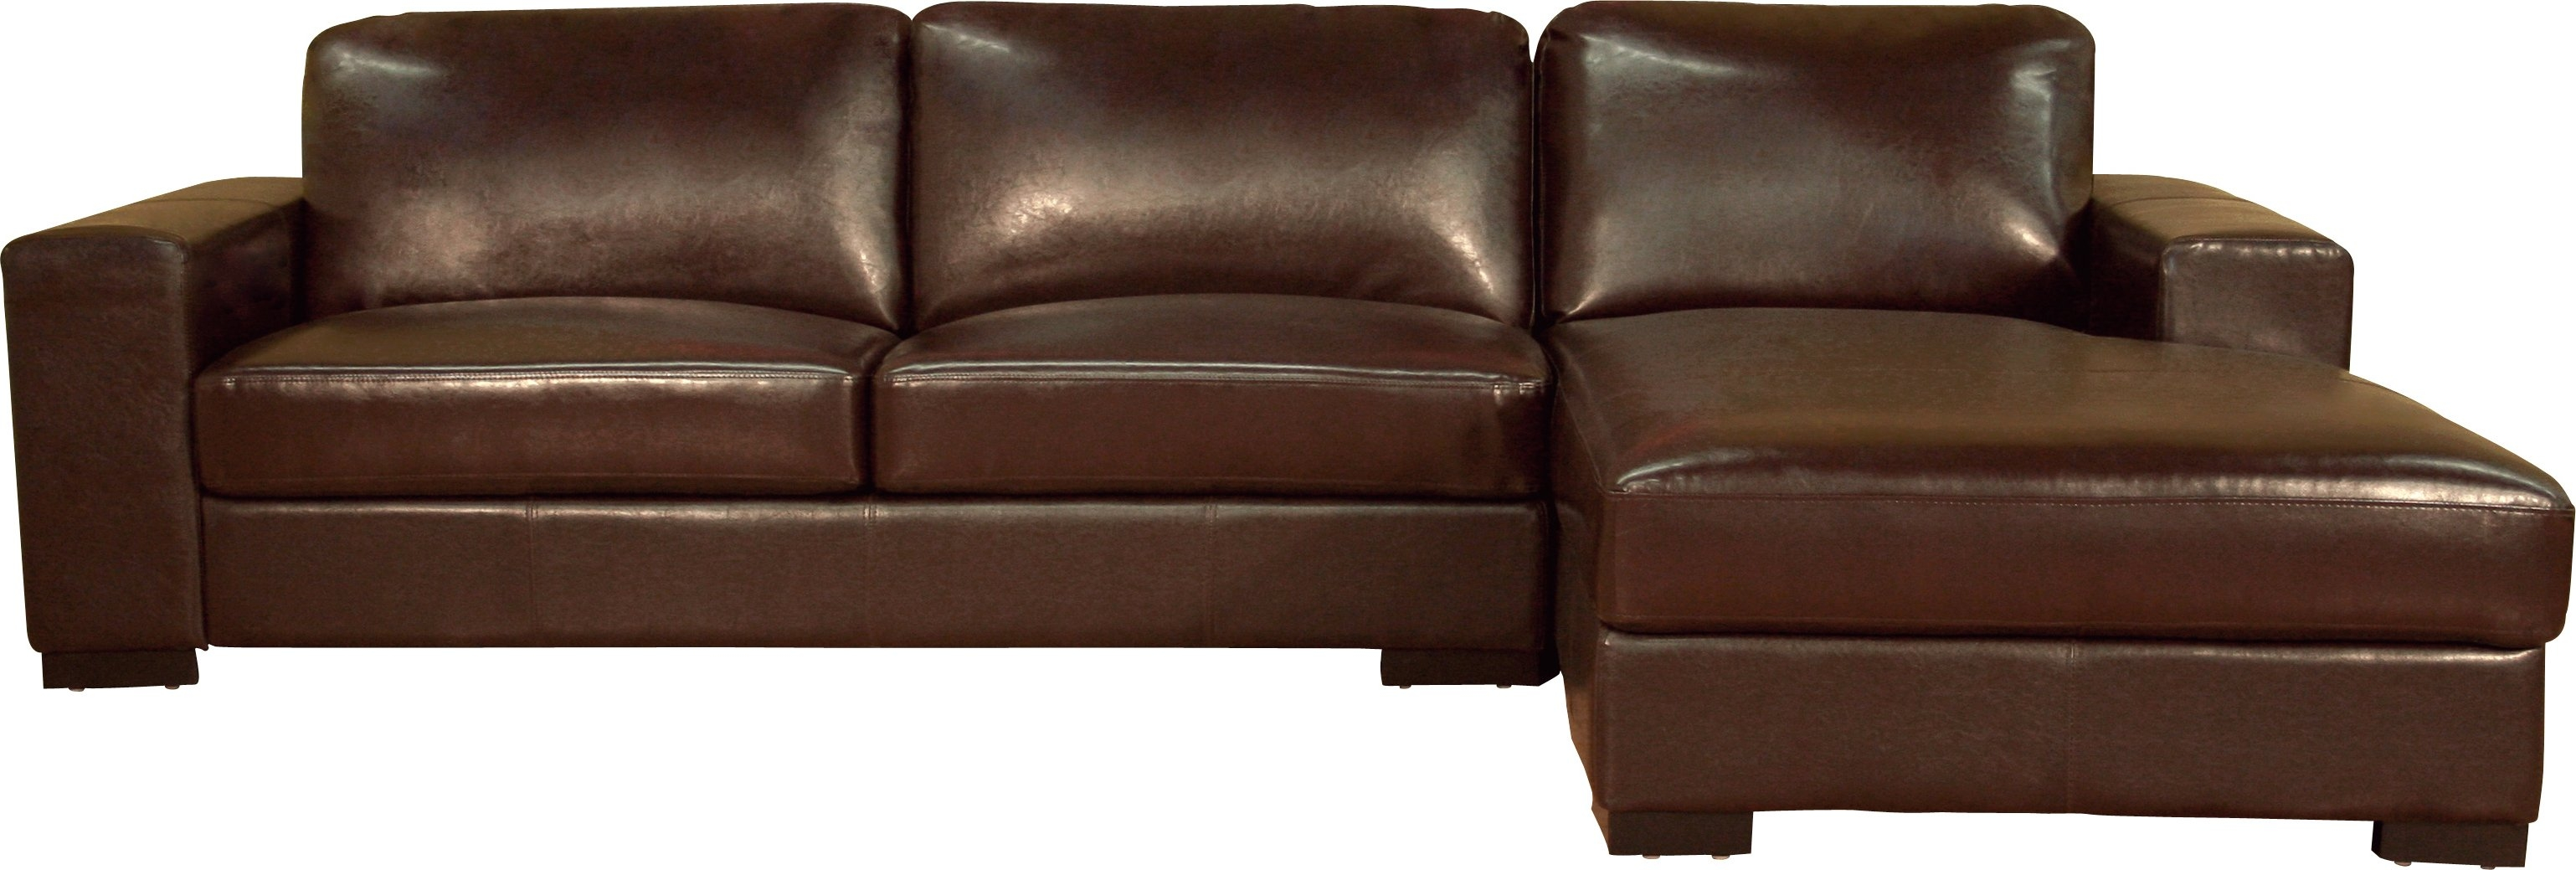 Sofas Center Leather Sofa With Chaise Loungeofa For Home Design In Brown Sofa Chairs (Image 15 of 15)